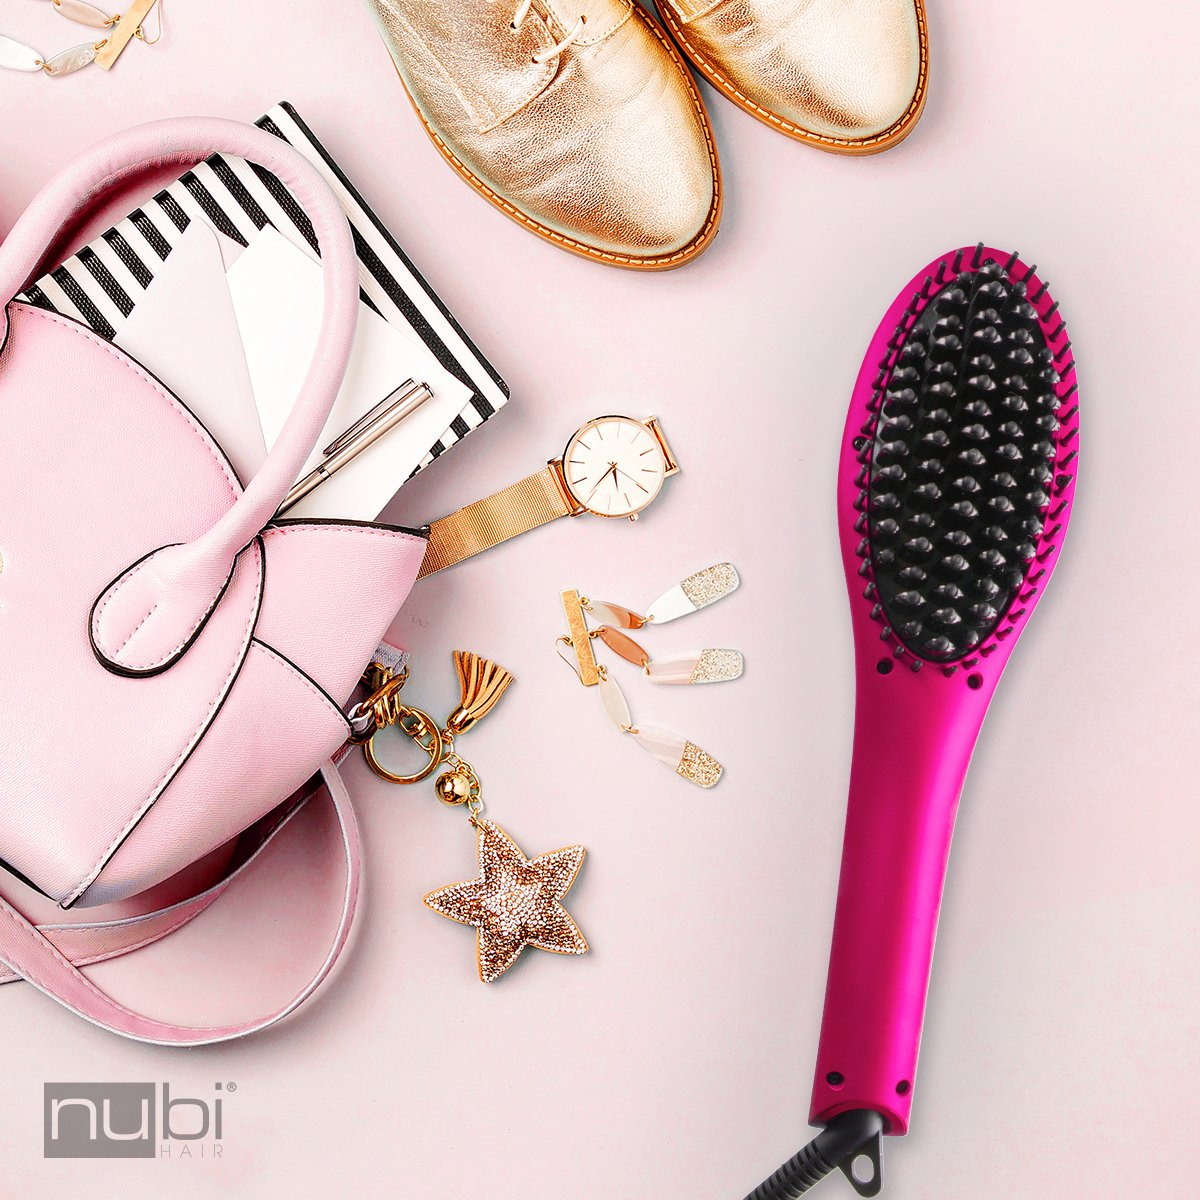 Nubi Hair Simply Sleek Ceramic Hair Straightening Brush Pink